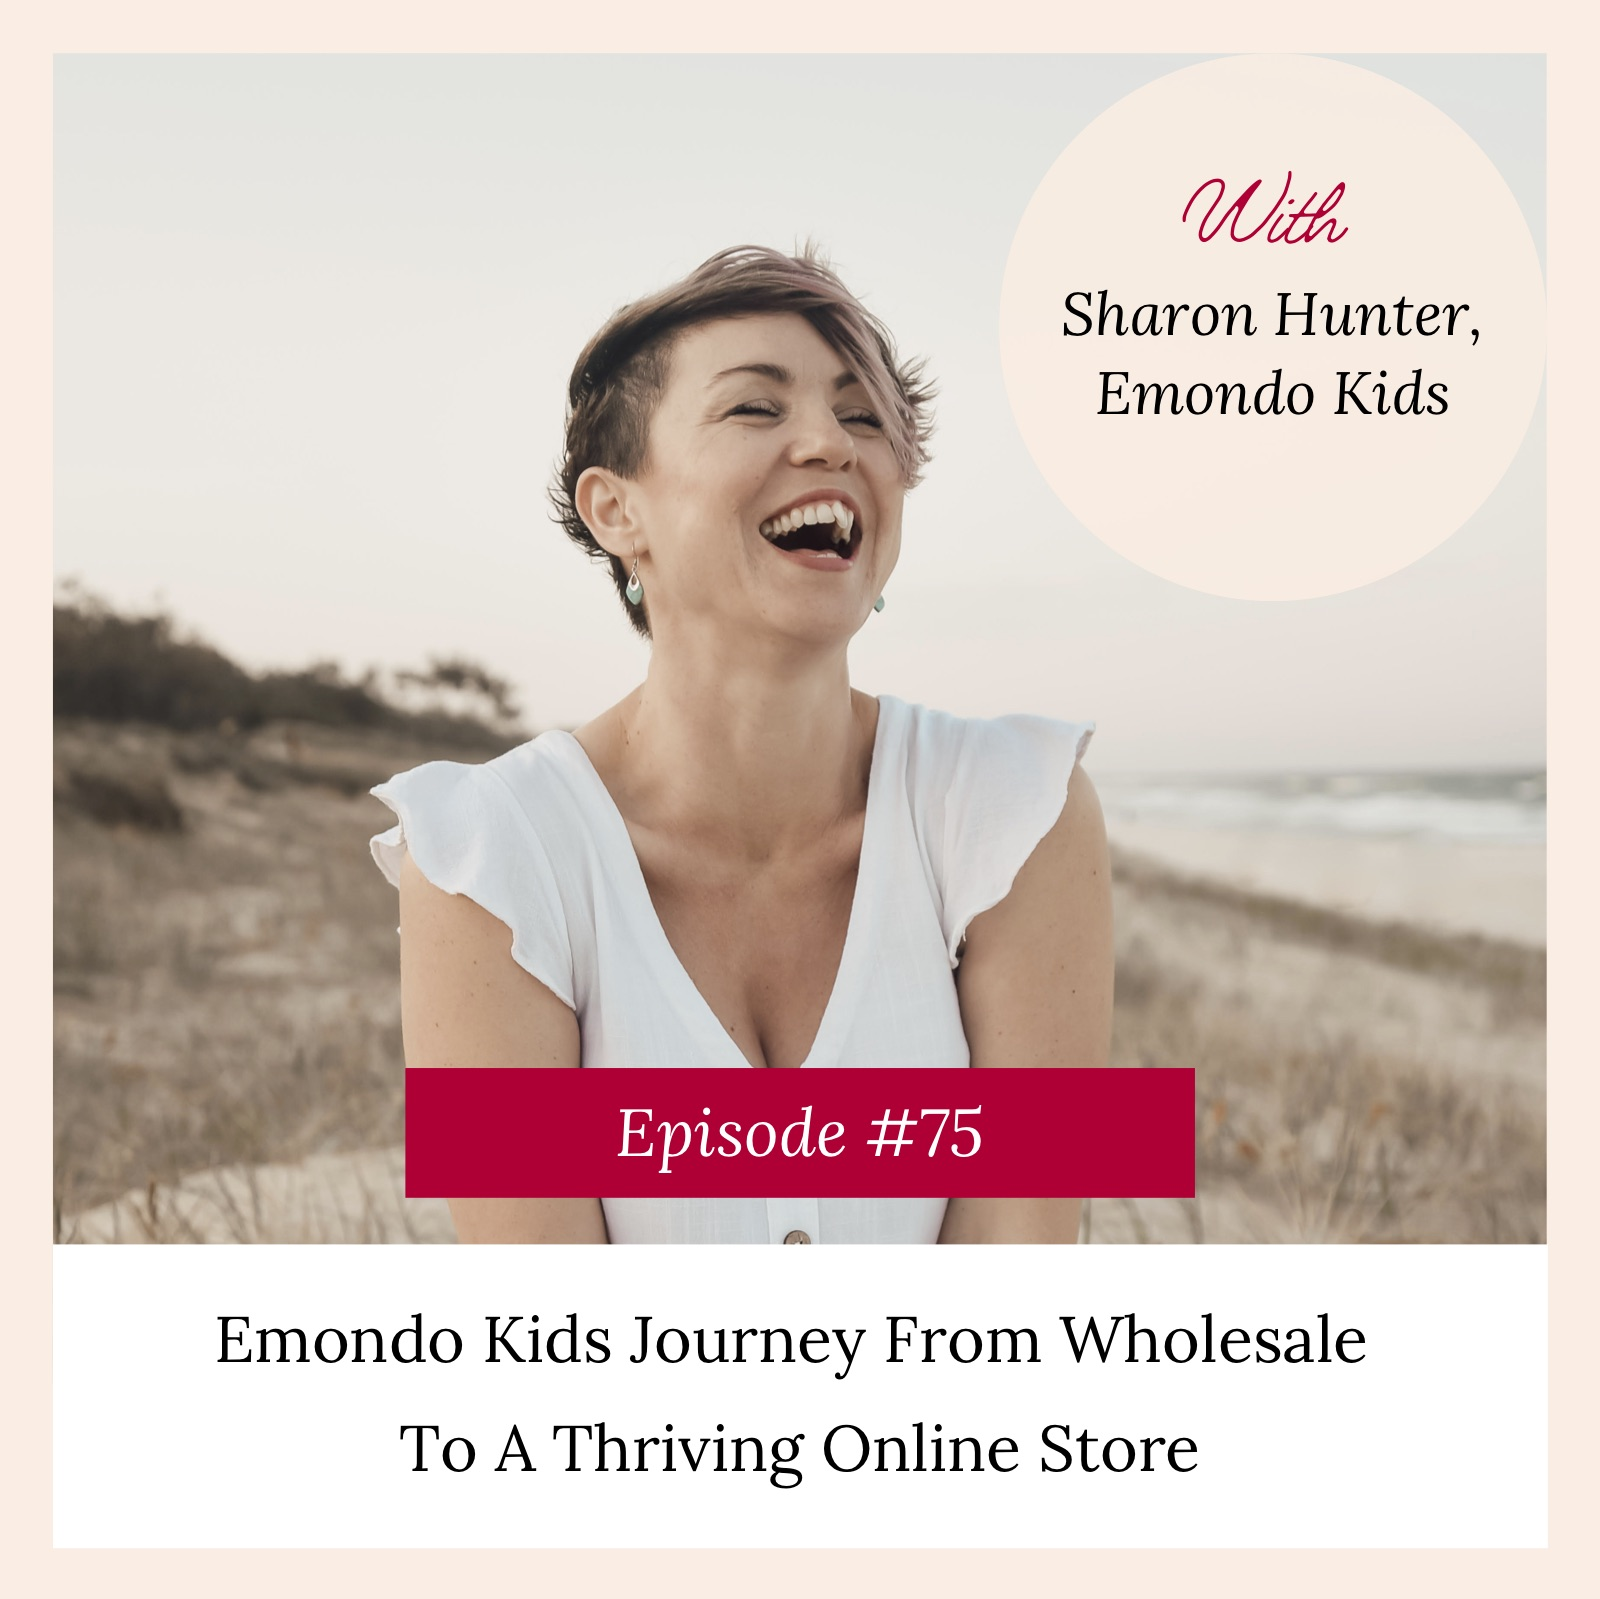 Podcast Title: Emondo Kids Journey from Wholesale to Online Success